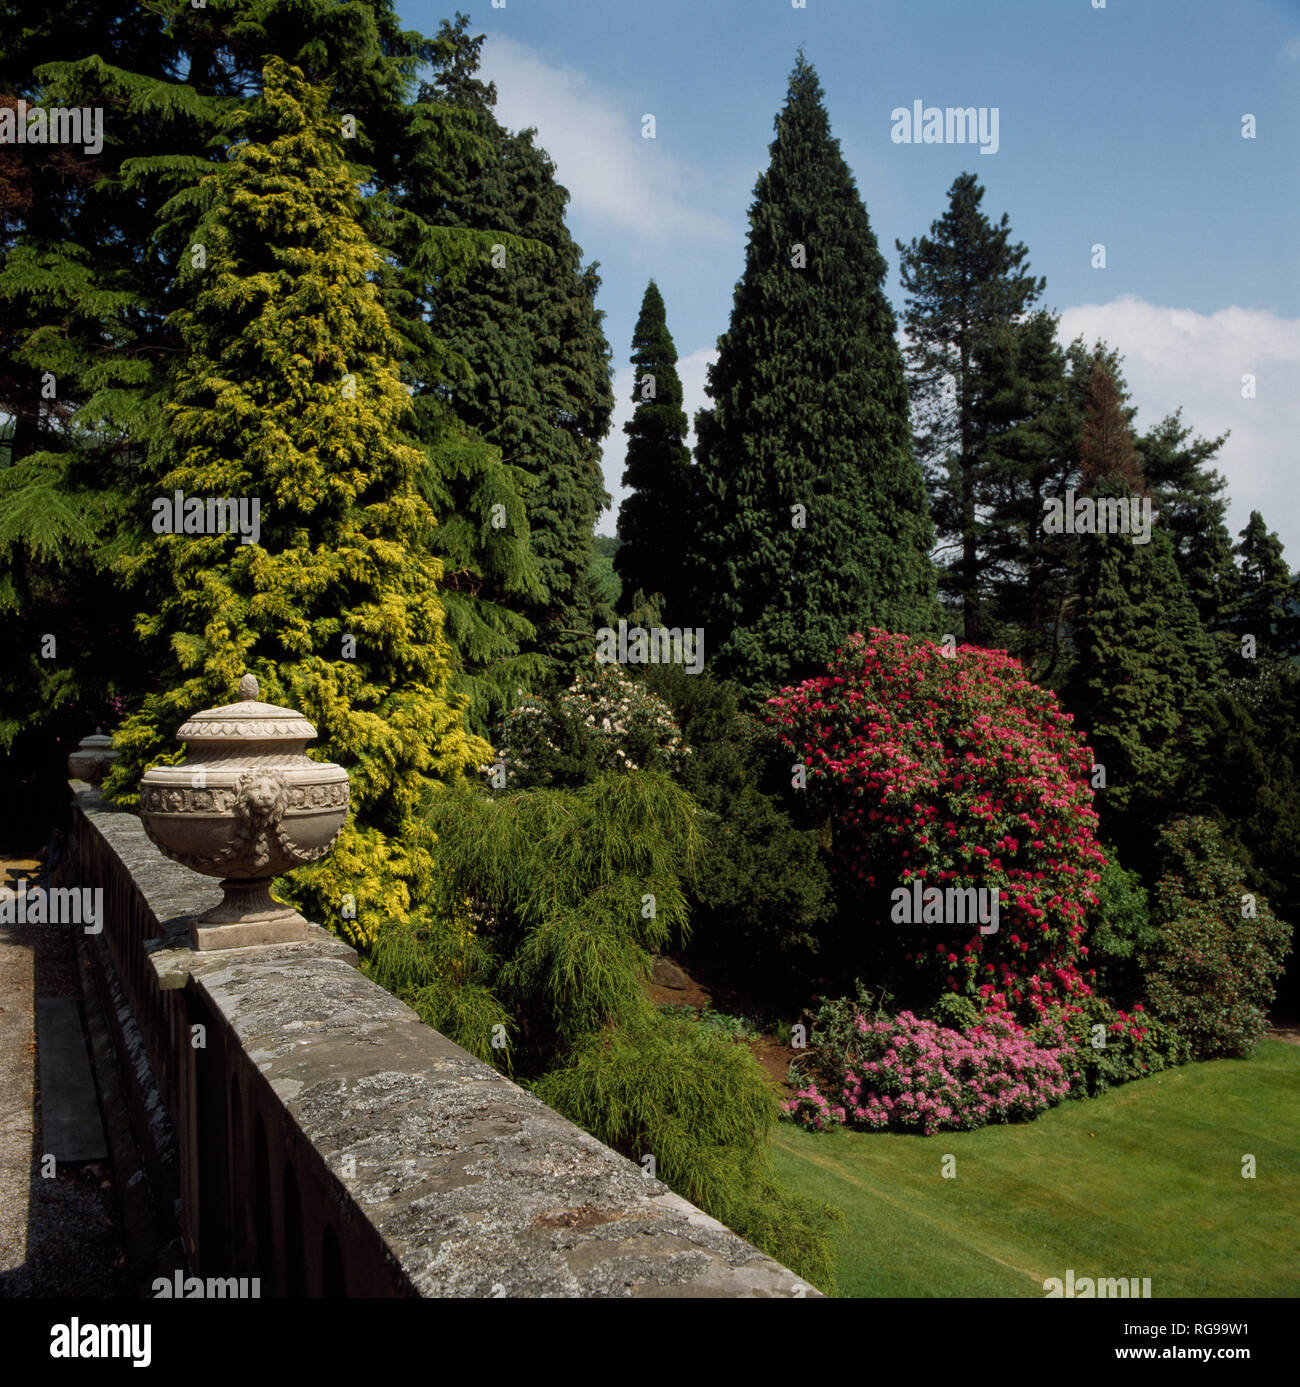 View from terrace with stone wall of tall conifers and rhododendron - Stock Image